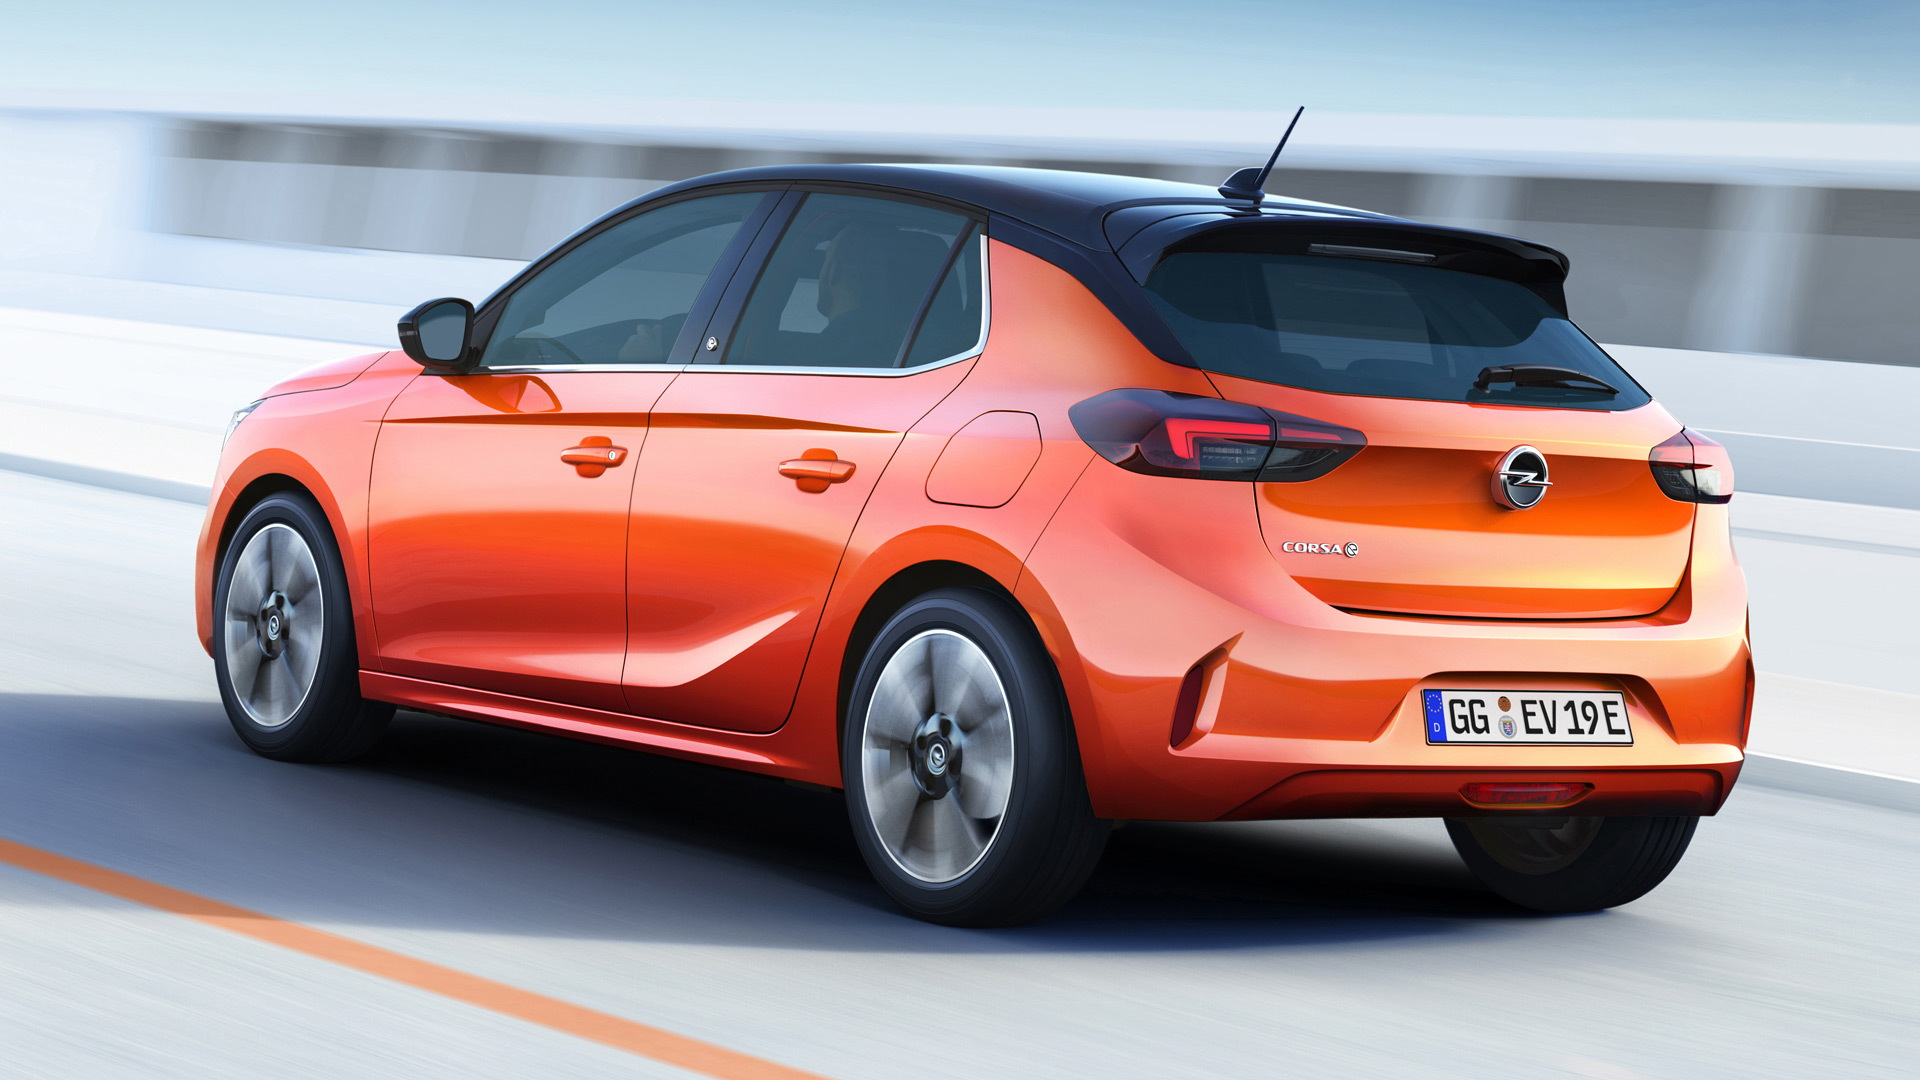 New electric Vauxhall Corsa revealed